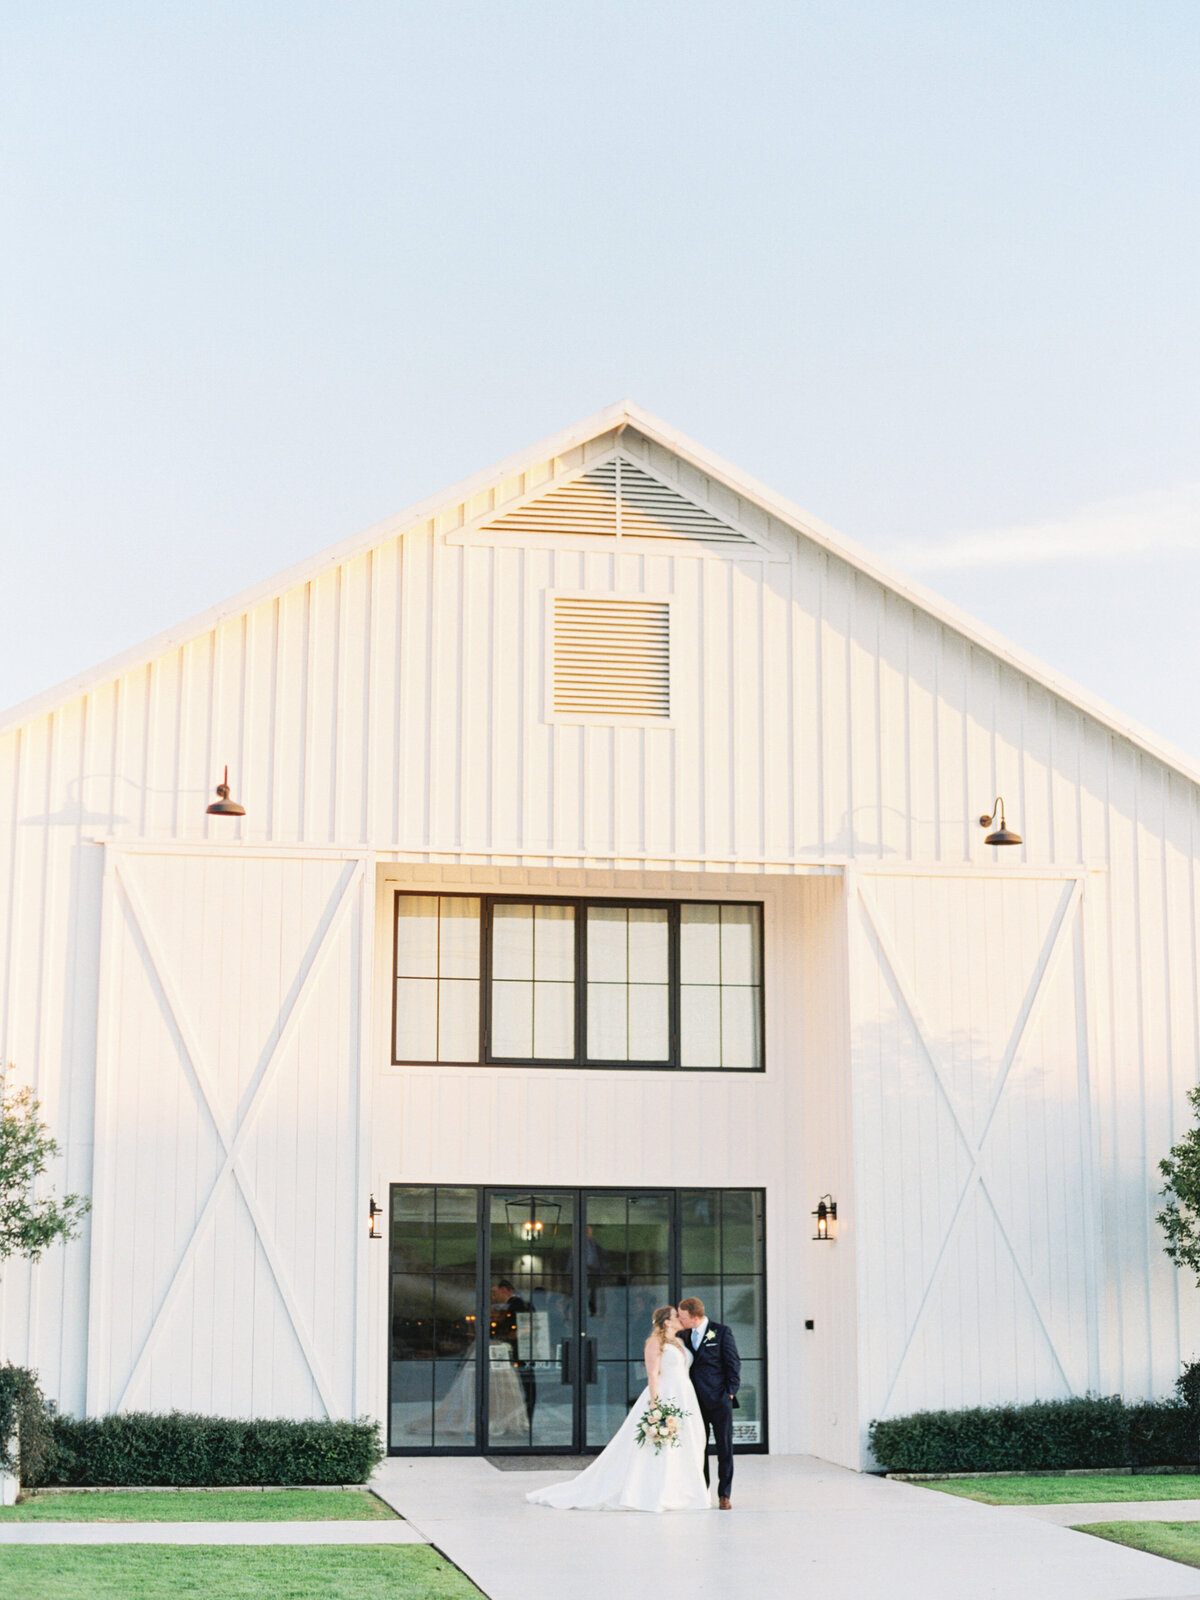 the-farmhouse-wedding-houston-texas-wedding-photographer-mackenzie-reiter-photography-91